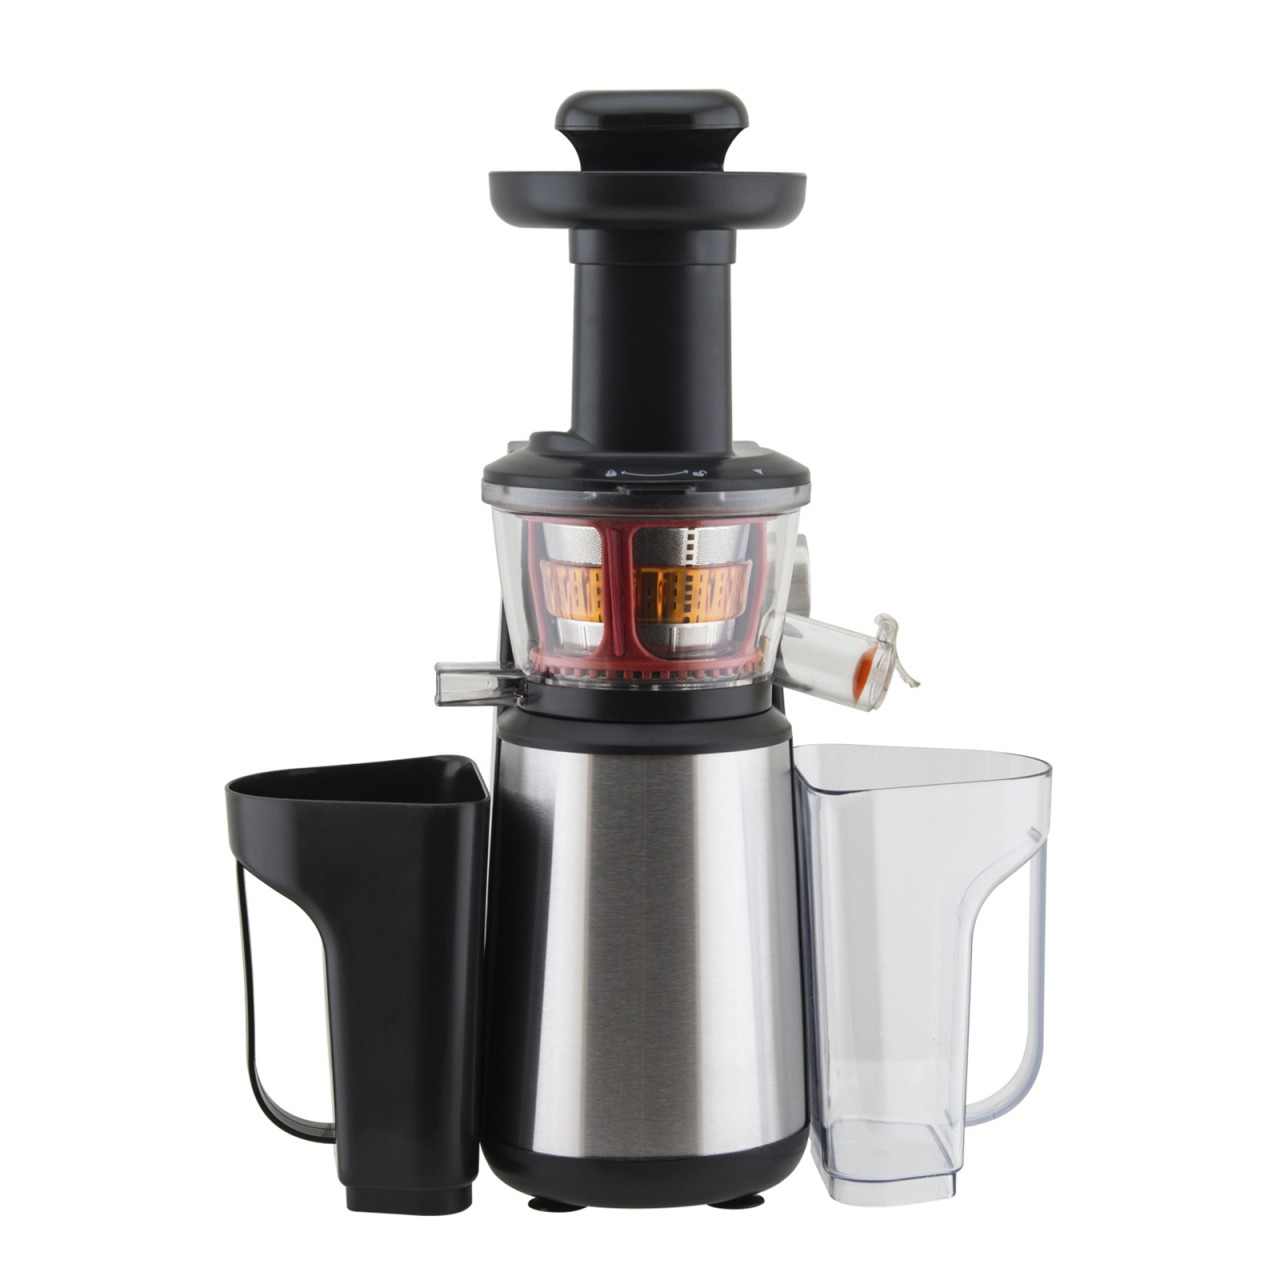 Slow Juicer Watt : Power Juice extractor Slow Juicer Stainless steel 400 Watt H.koenig GSX12 eBay